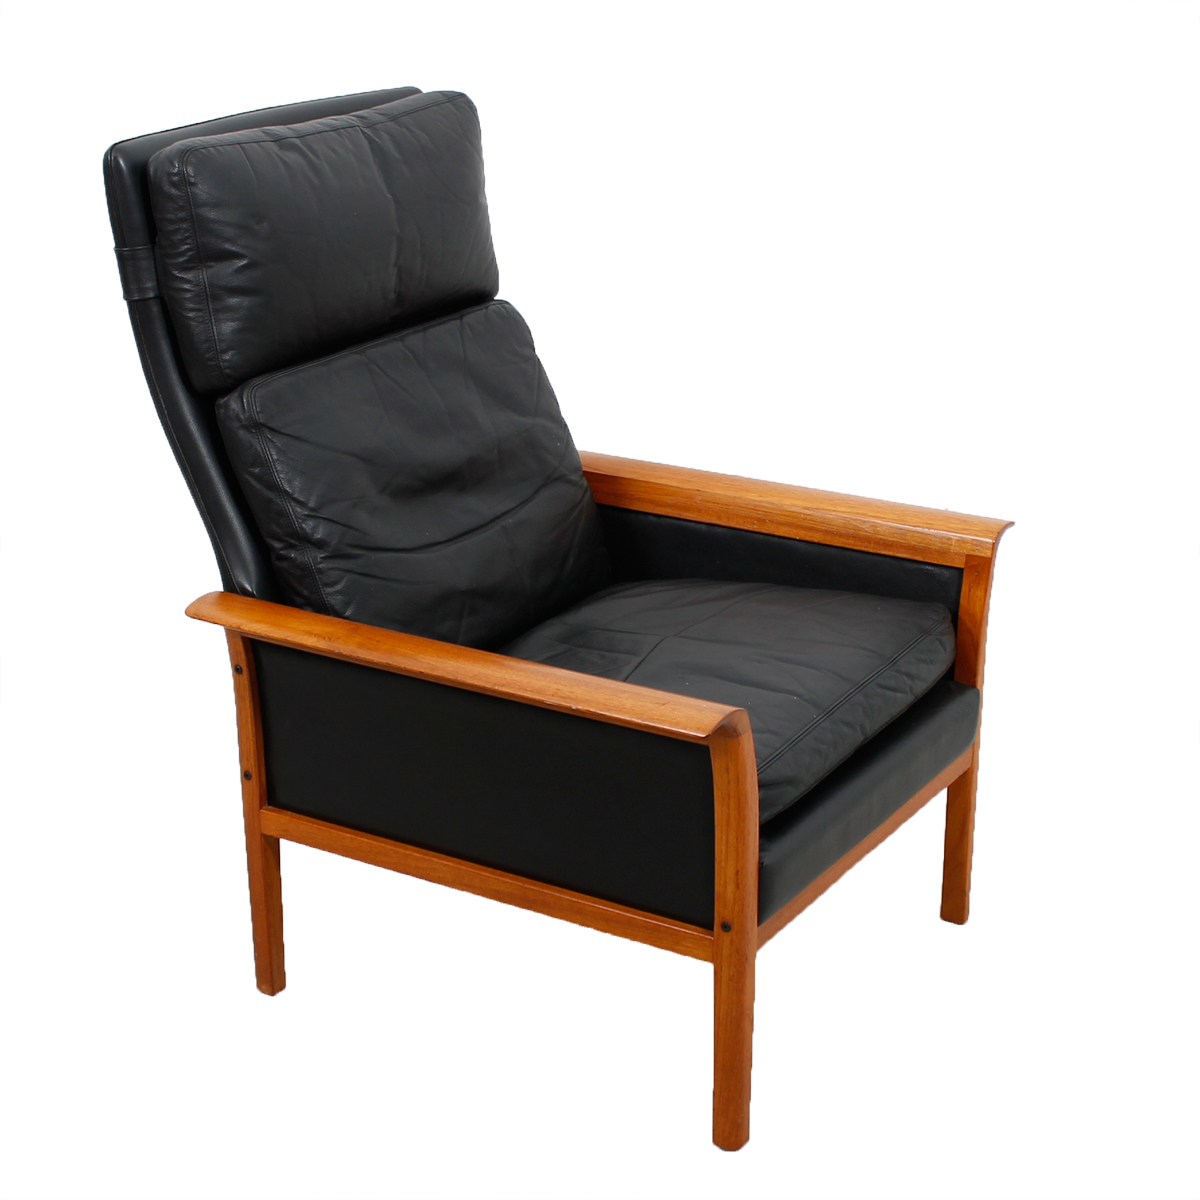 Hans Olsen Teak & Leather Lounge Chair